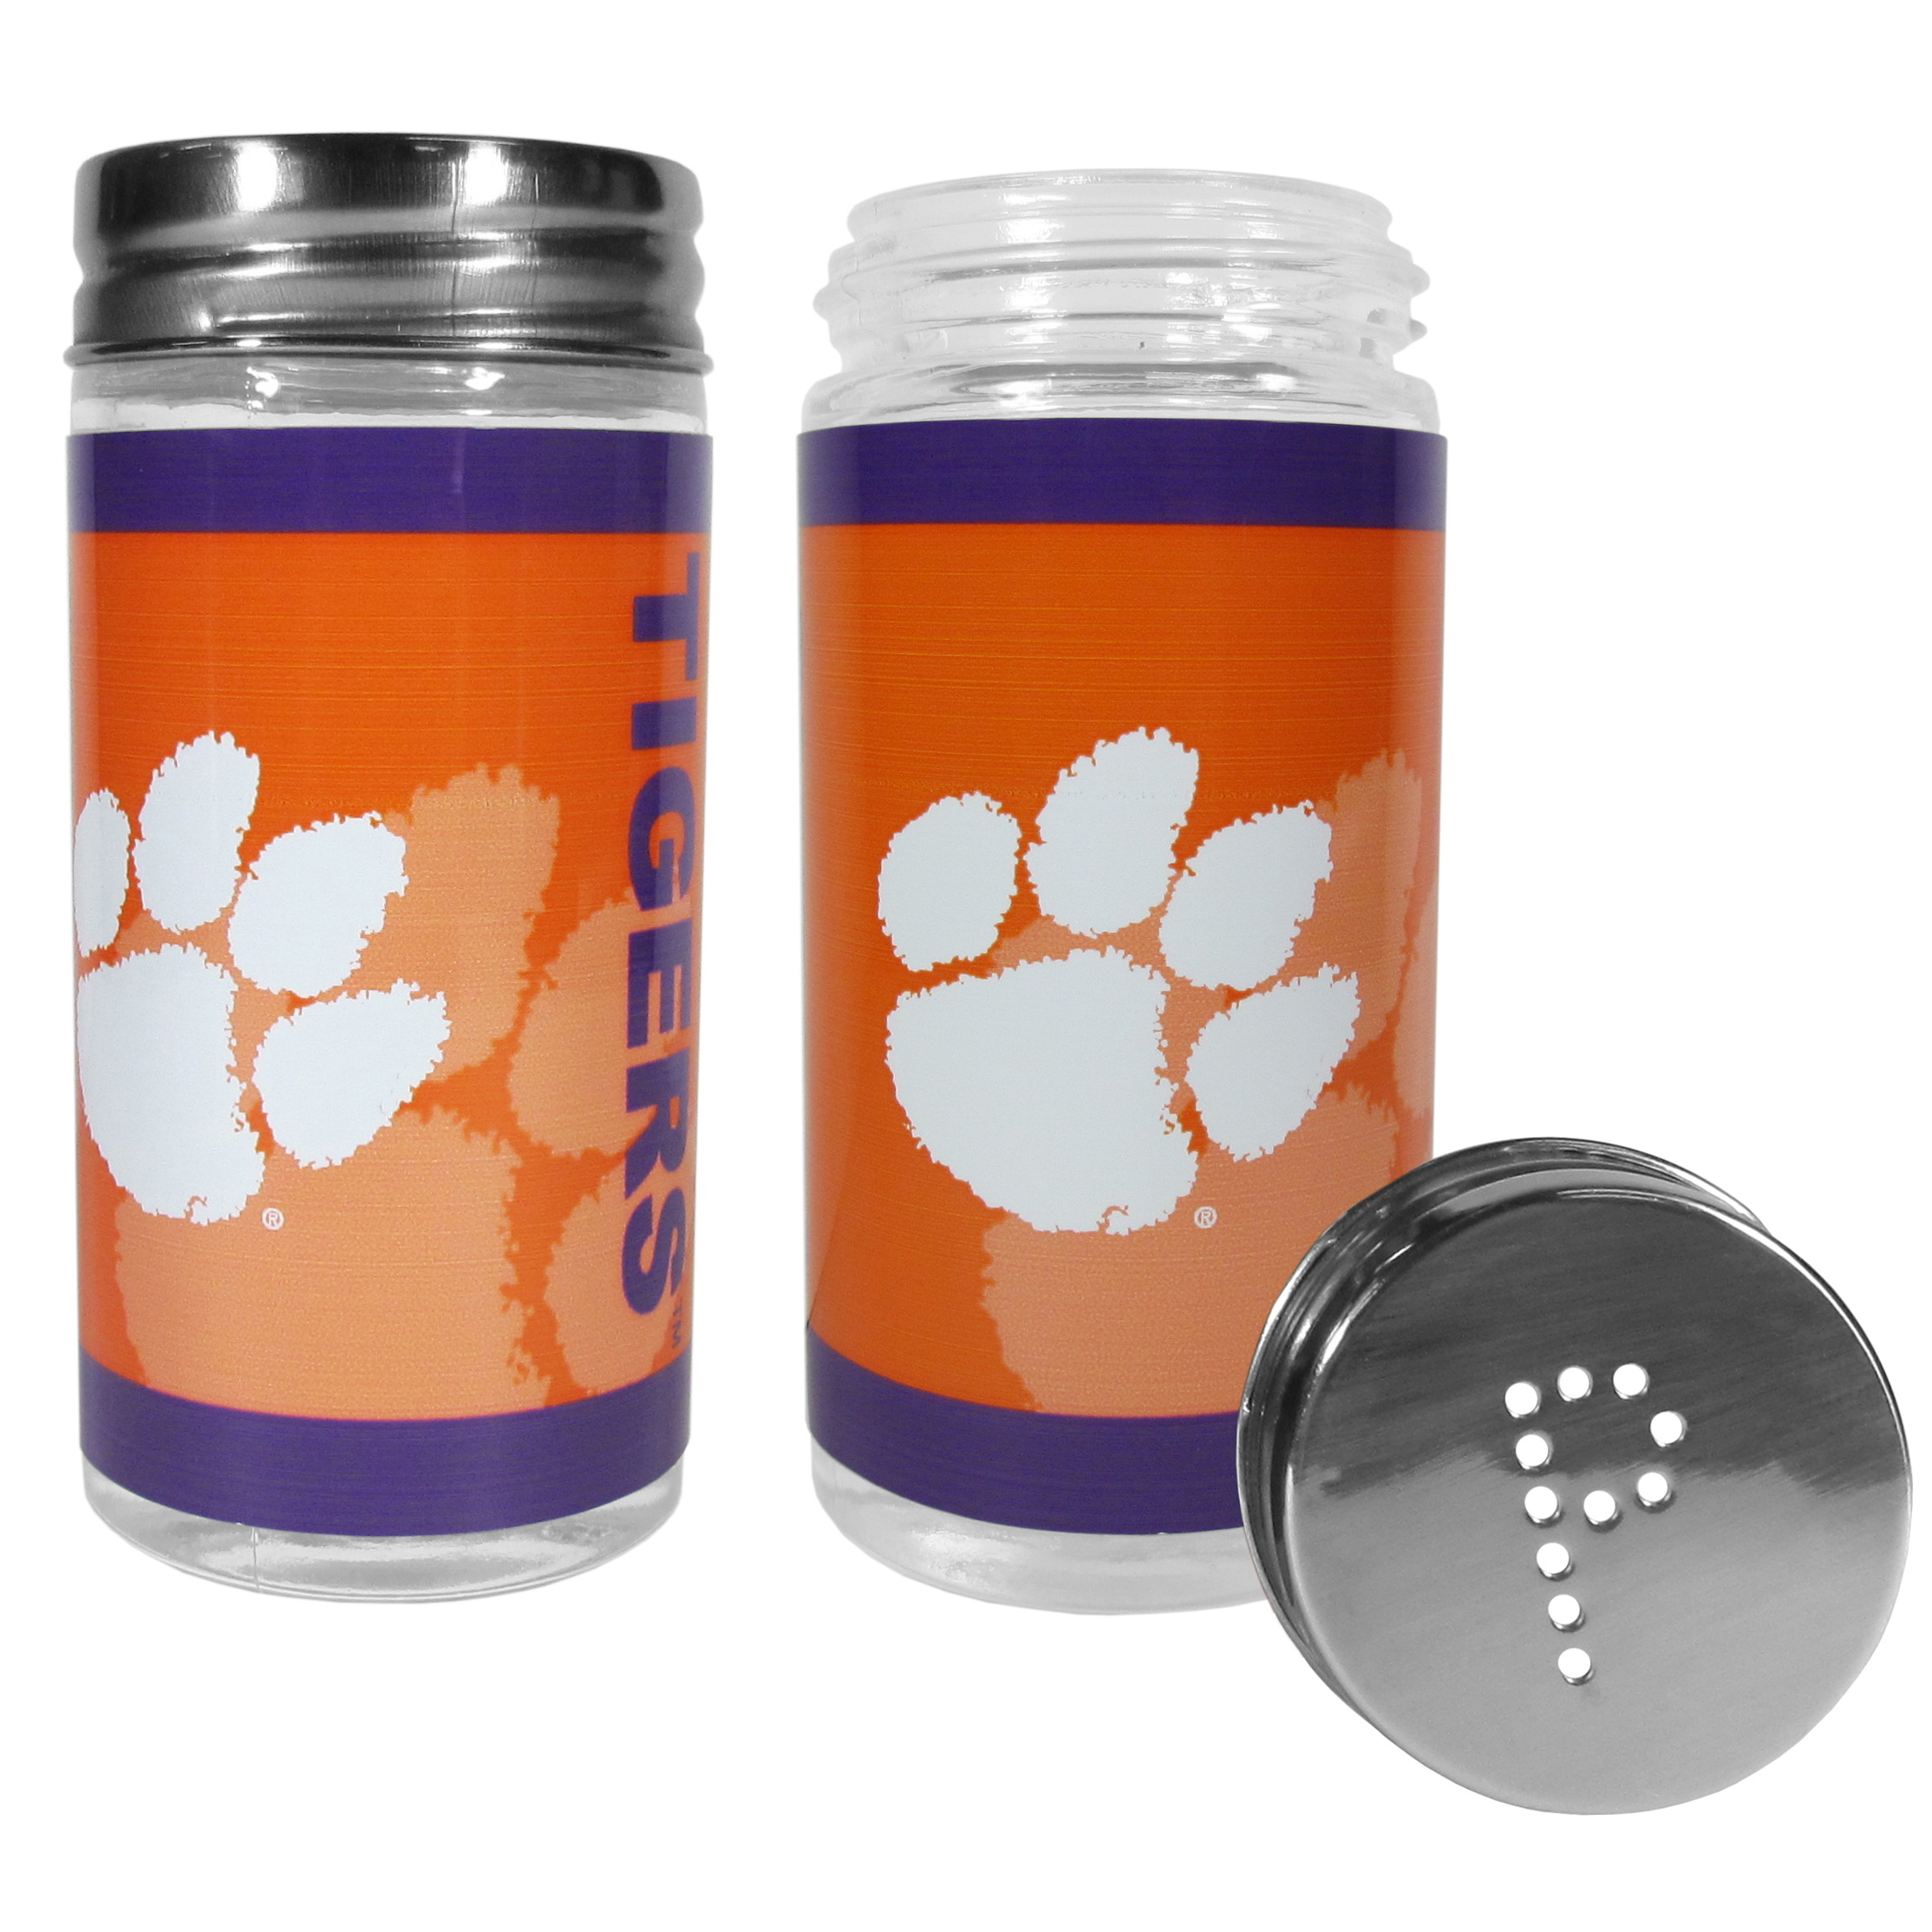 Clemson Tigers Tailgater Salt & Pepper Shakers - No tailgate party is complete without your Clemson Tigers salt & pepper shakers featuring bright team graphics. The glass shakers are 3.75 inches tall and the screw top lids have holes that spell out P and S. These team shakers are a great grill accessory whether you are barbecuing on the patio, picnicing or having a game day party.